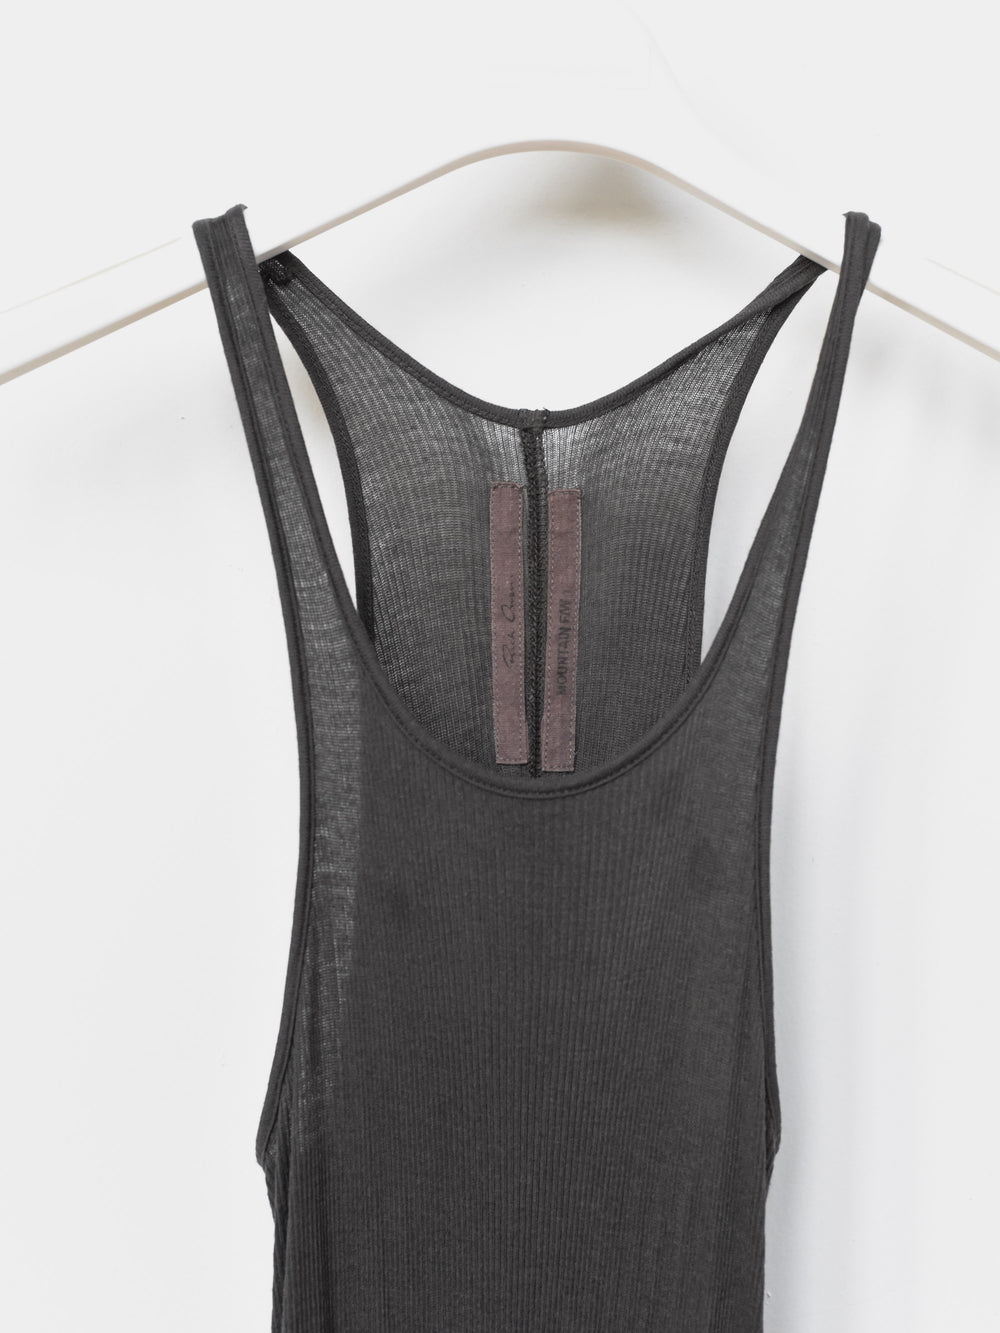 Rick Owens AW12 Ribbed Tank Dress